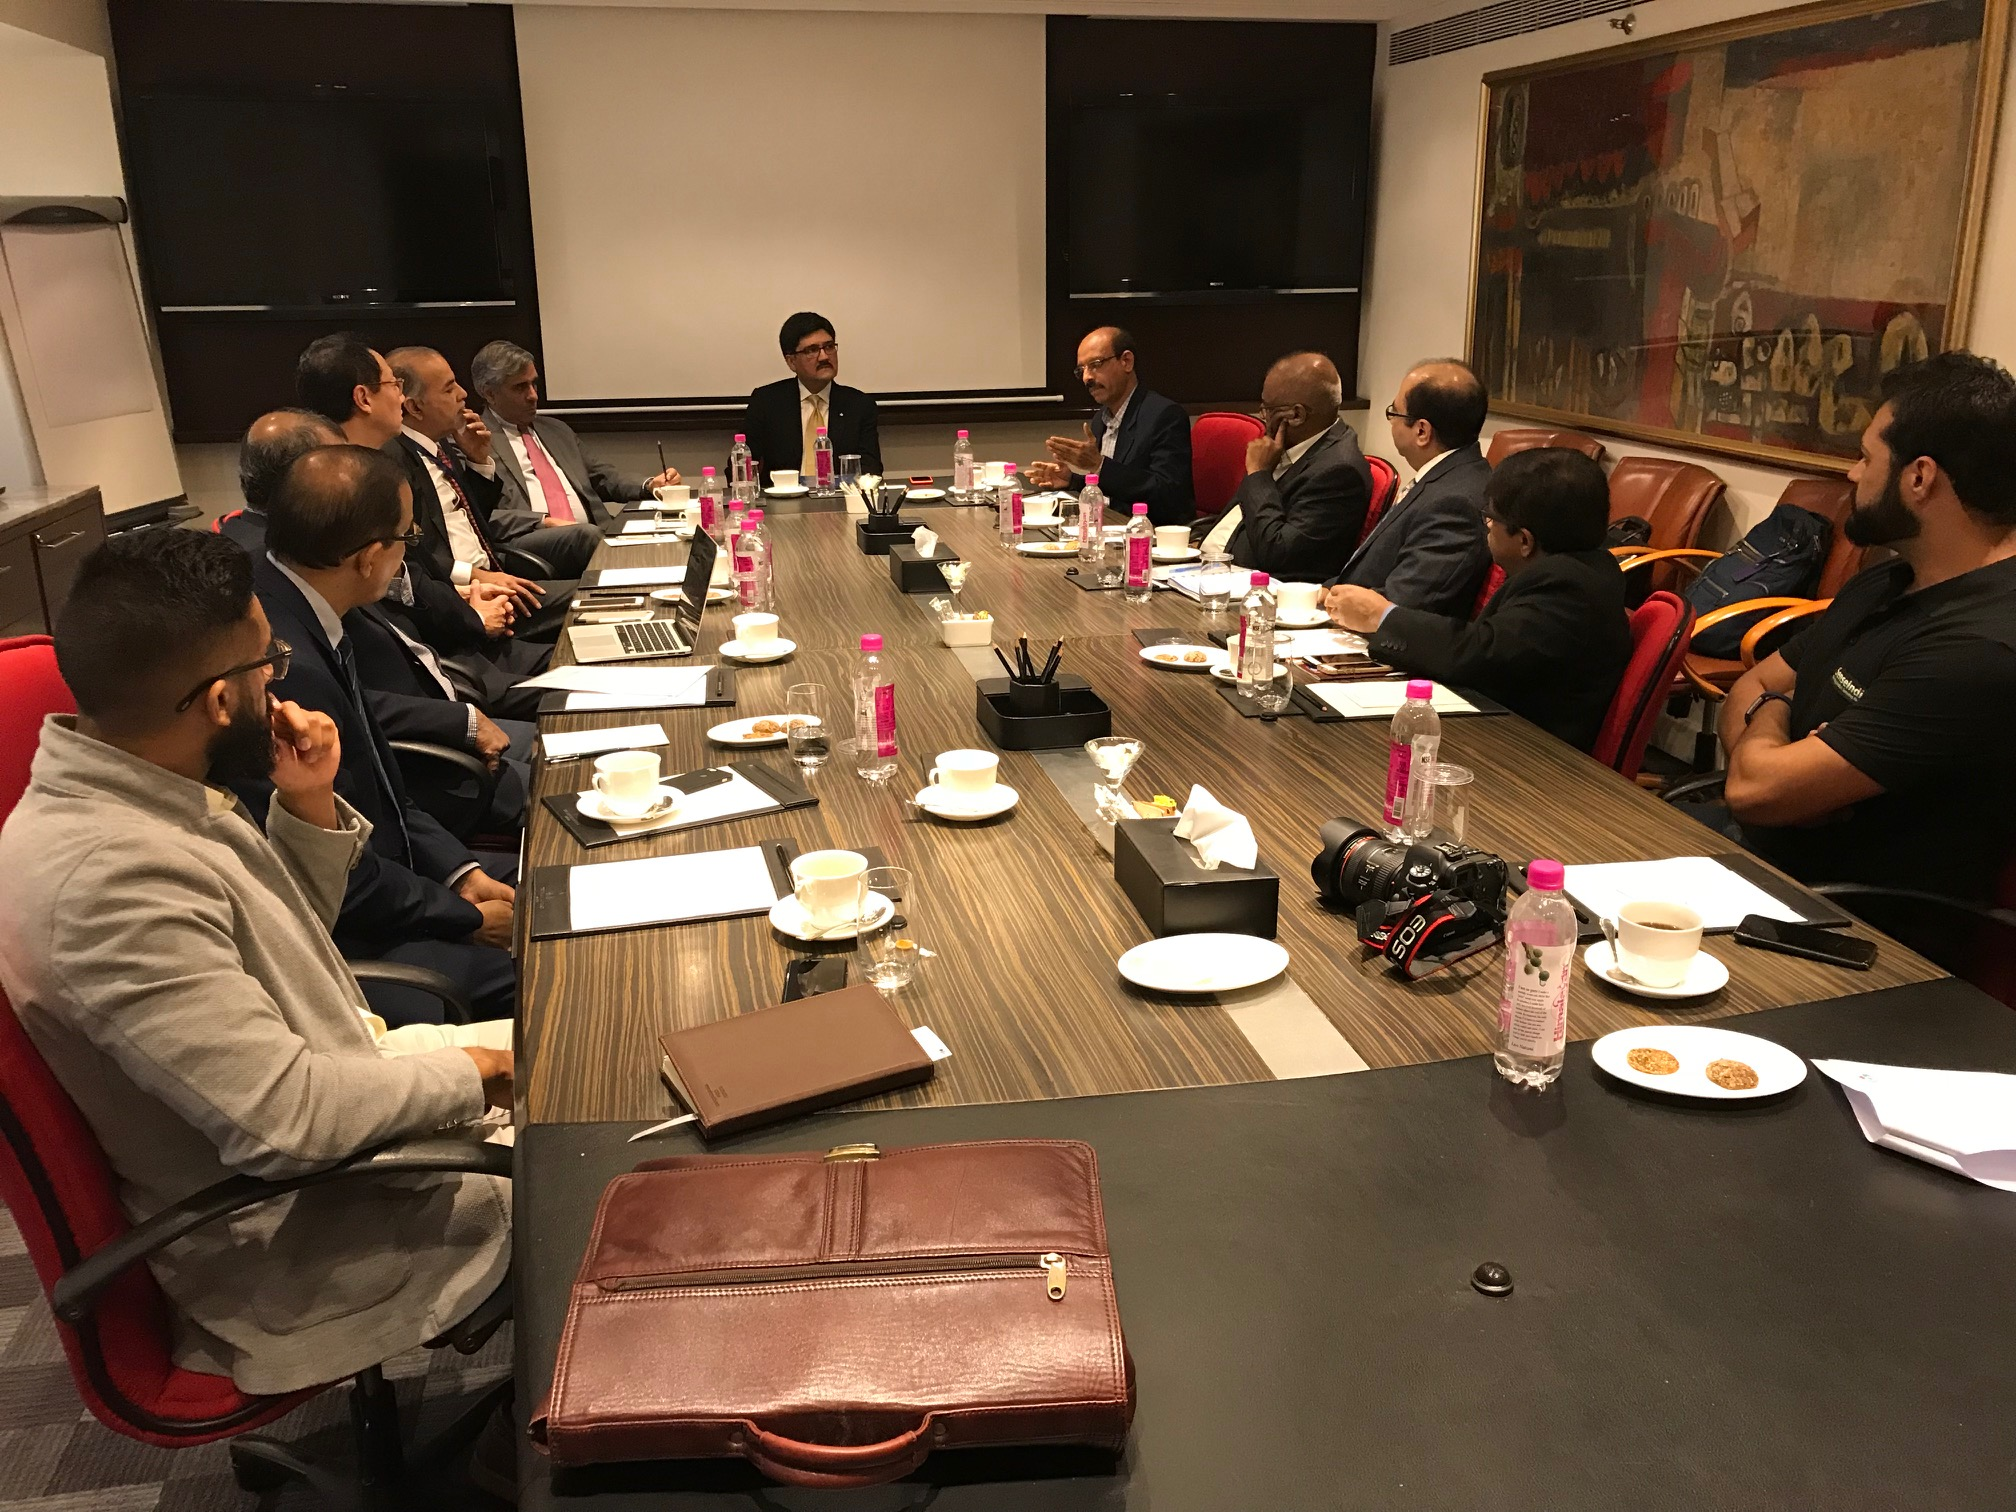 Photo of representatives from IC-IMPACTS, UBC, SenseIndia Ltd, Starmass Environment Technologies, Infrastructure Leasing and Financial Services (IL&FS), the National Academy of Construction (NAC), Tata Consultancy Services (TCS), and T-Hub around a table for a signing ceremony at Taj Tower, Business Center.